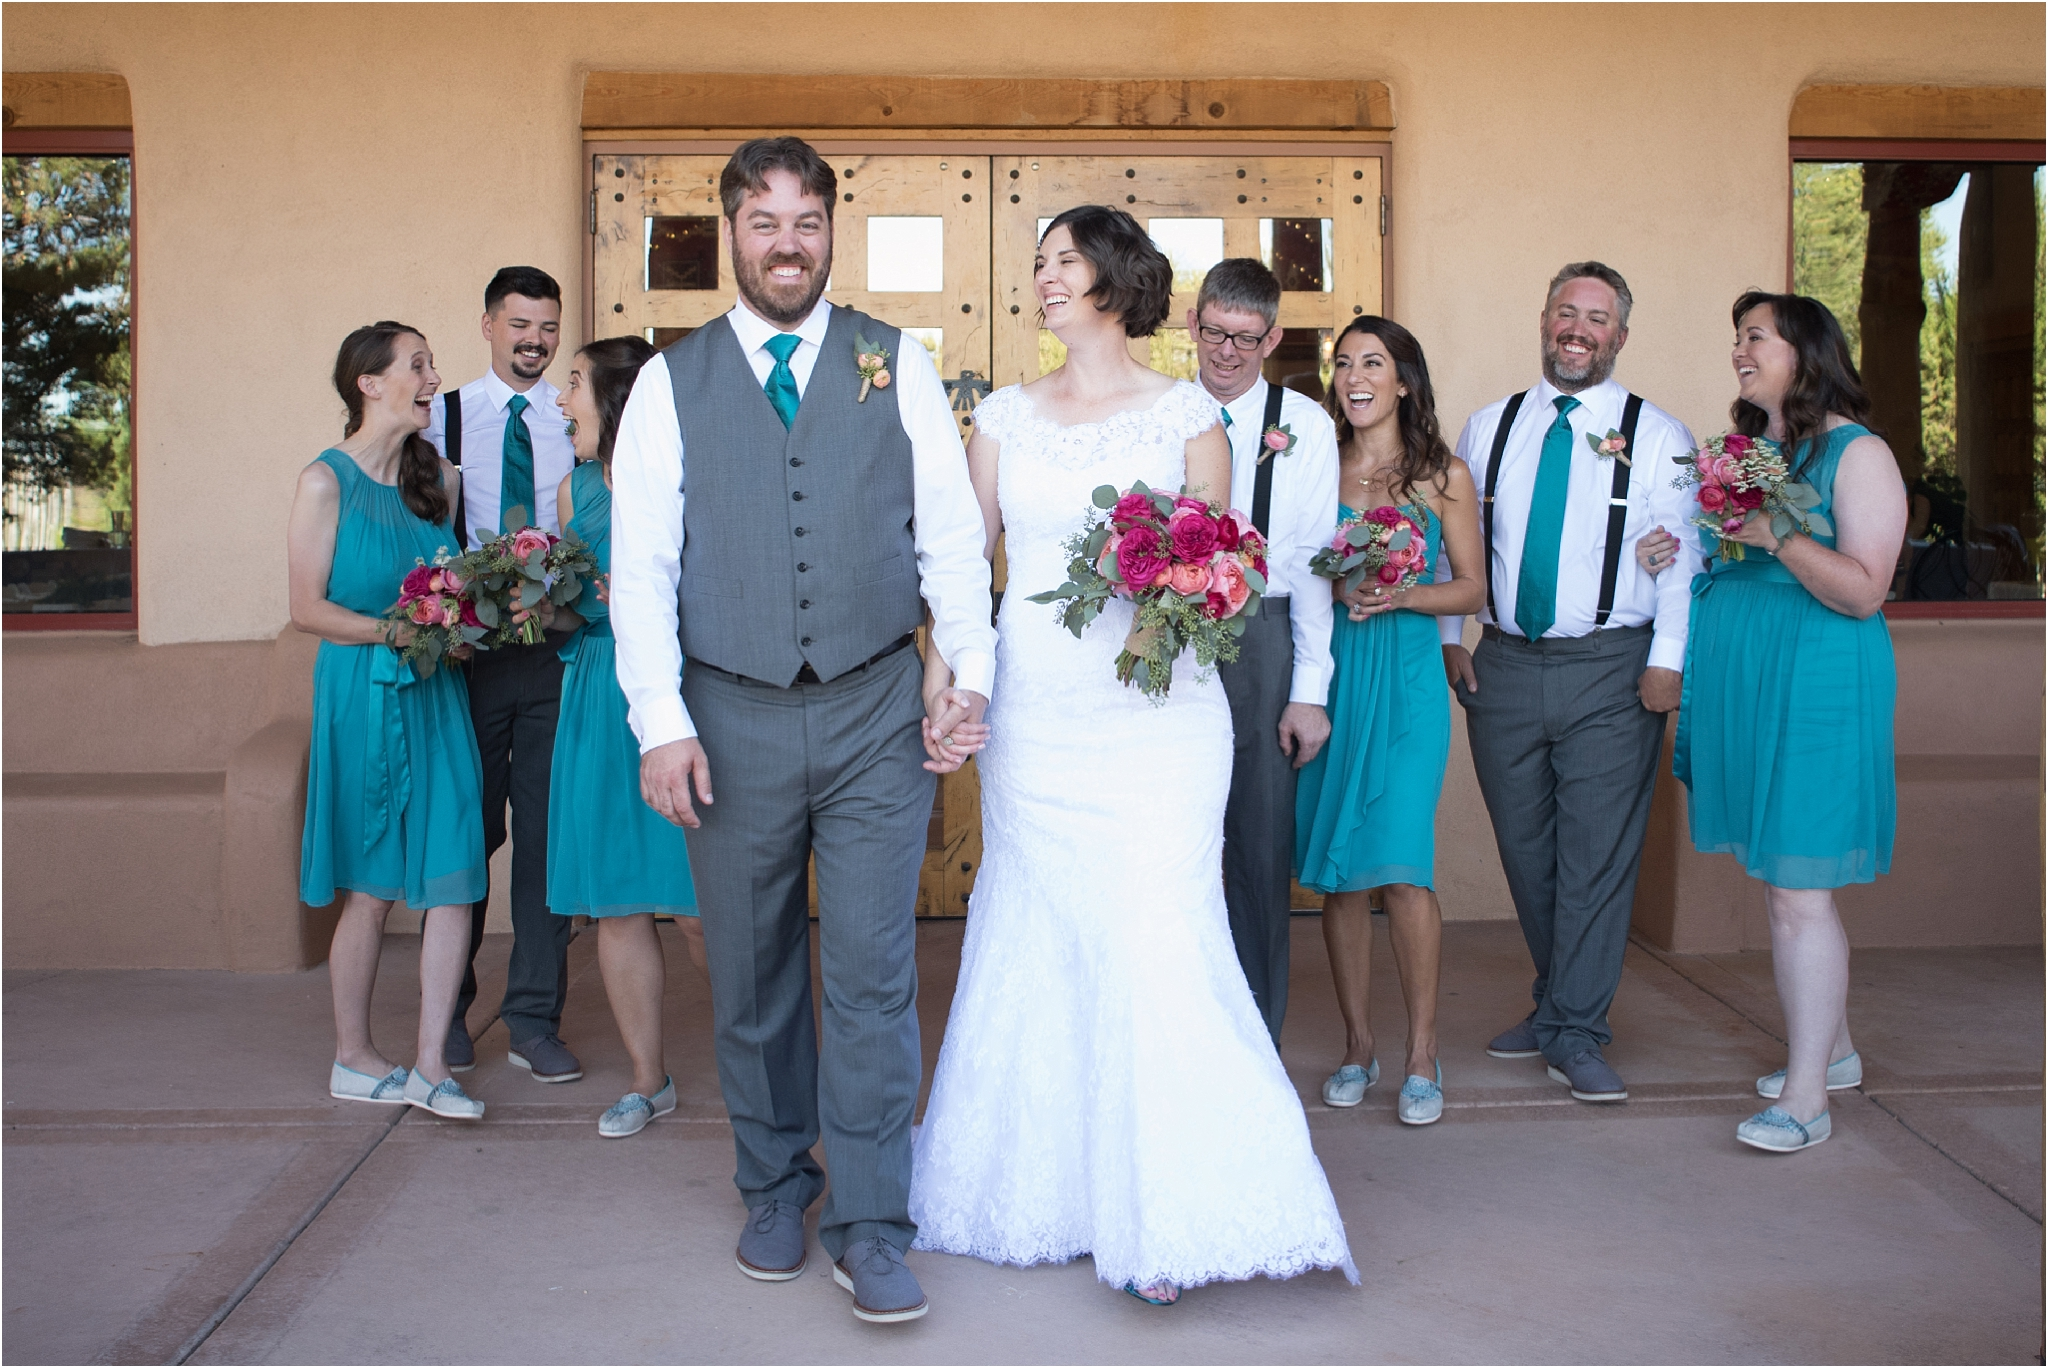 kayla kitts photography - albuquerque wedding photographer - new mexico wedding photographer - desination wedding photographer - cabo wedding photographer_0012.jpg